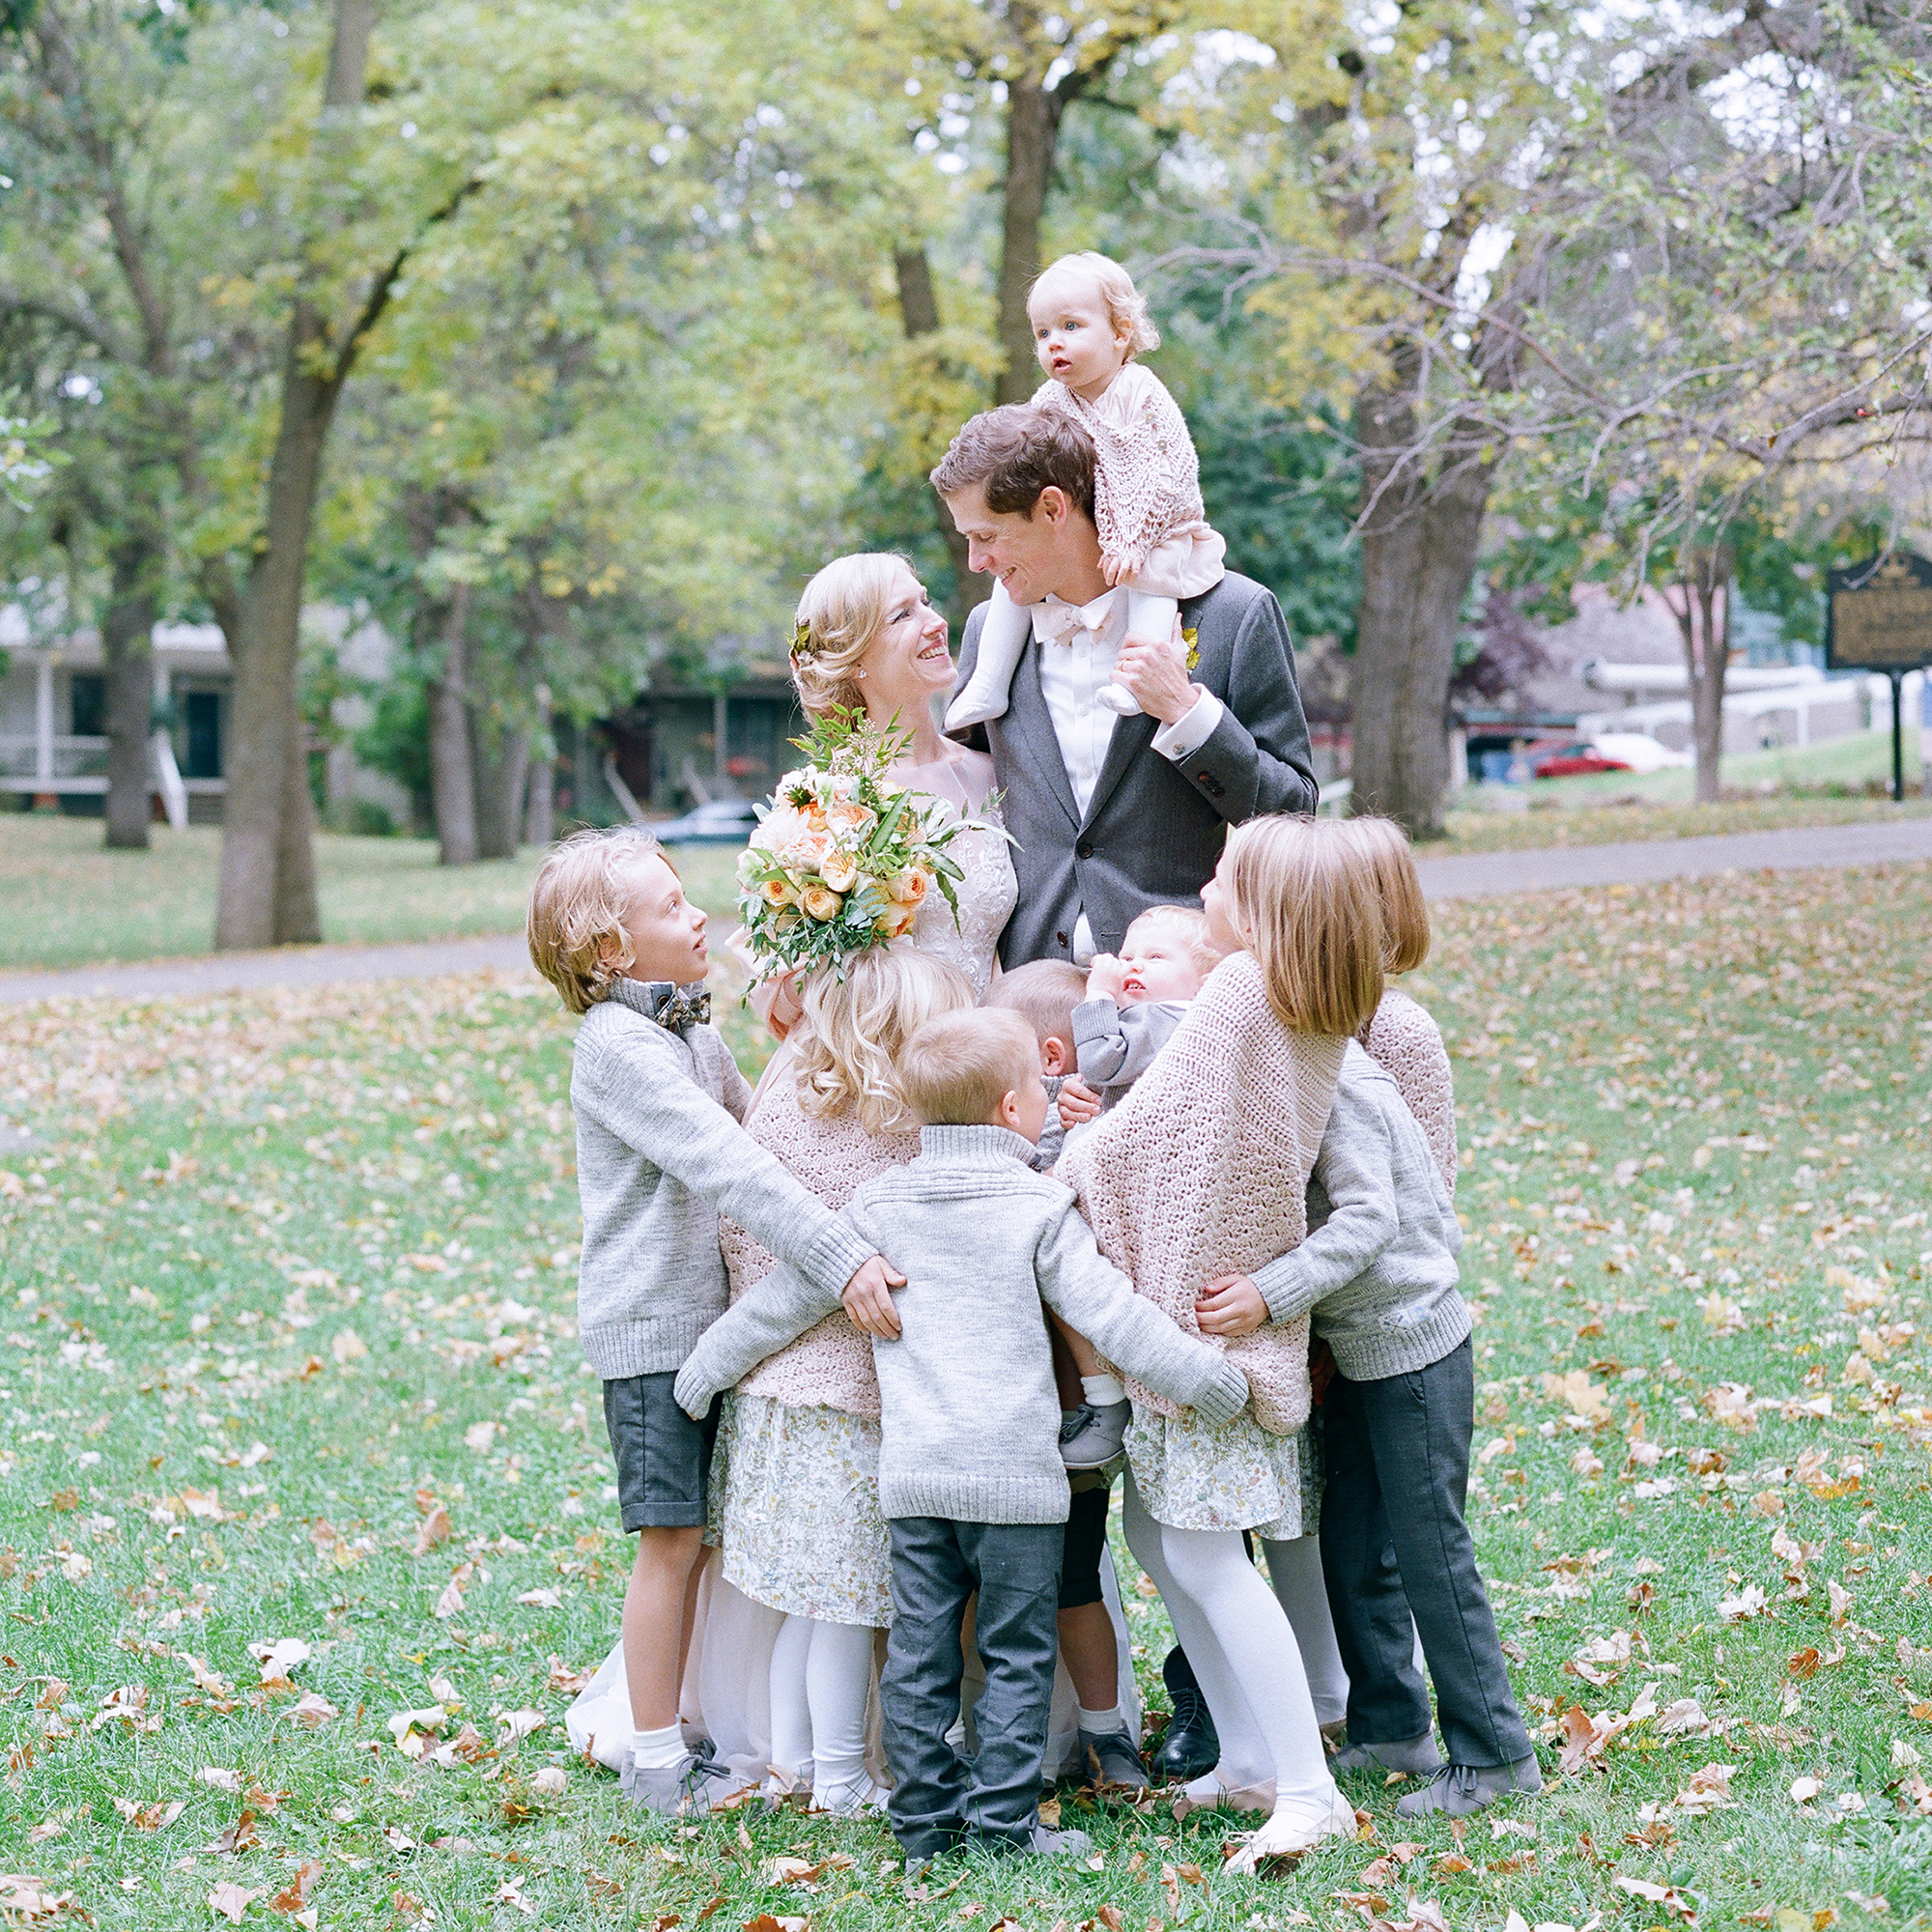 Father-Daughter Wedding Photos, Bride and Groom with Baby and Wedding Party Kids